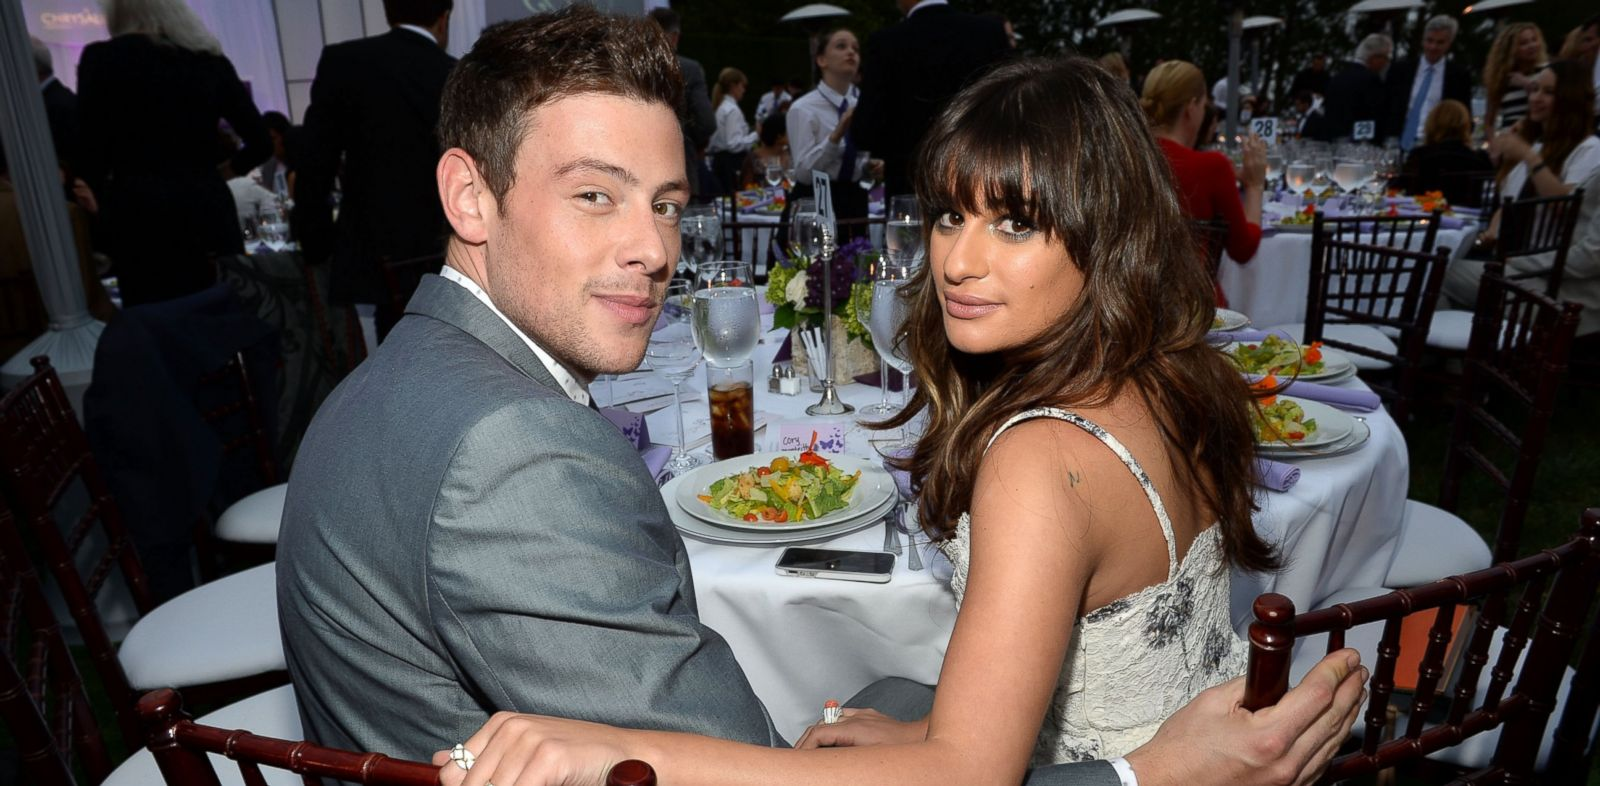 PHOTO: Cory Monteith, left, and Lea Michele attend the 12th Annual Chrysalis Butterfly Ball on June 8, 2013 in Los Angeles.